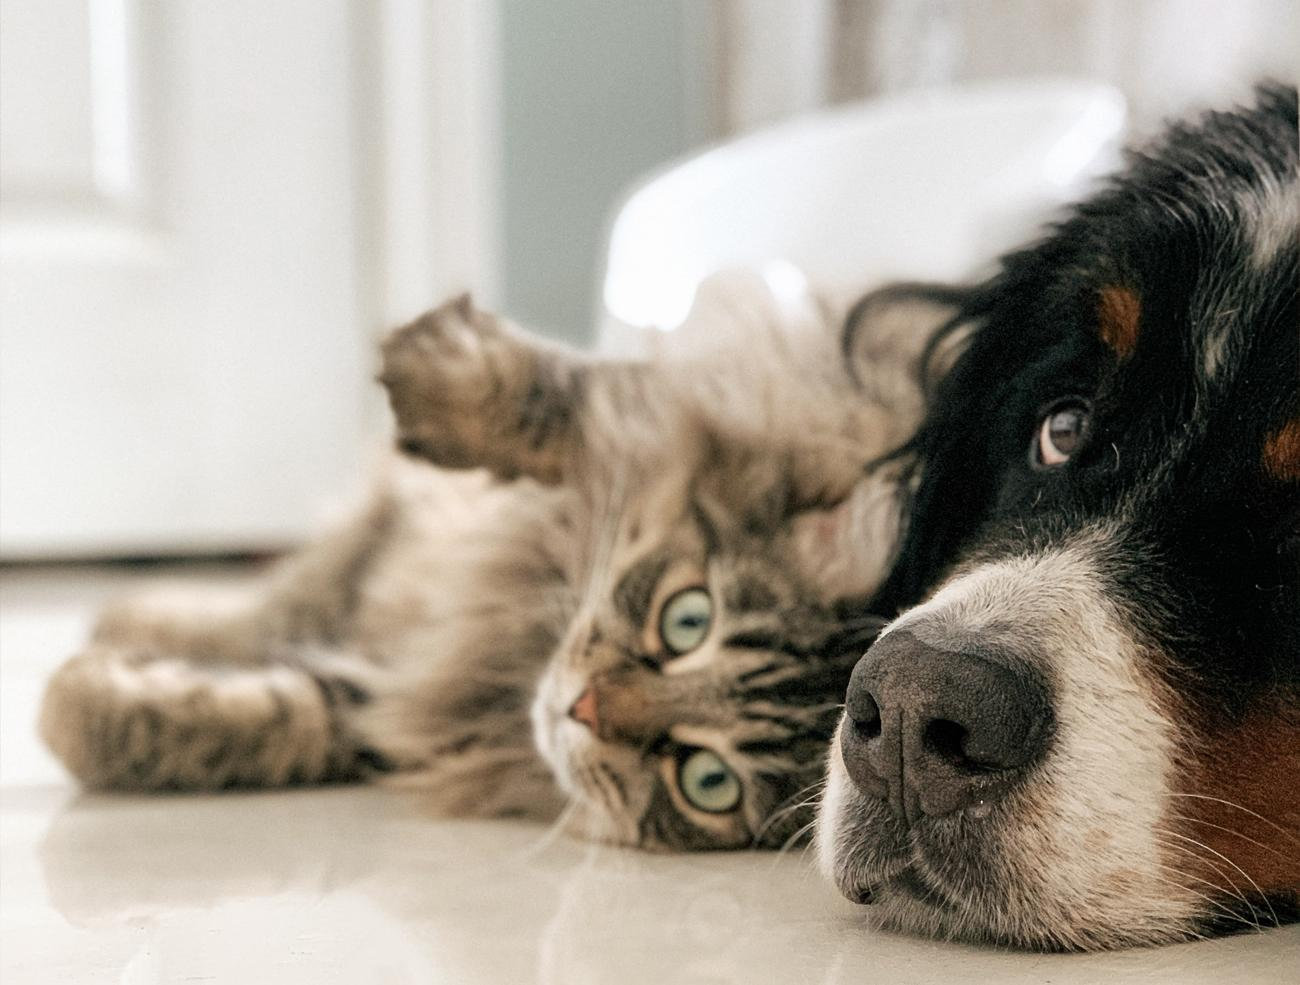 soin animaux chat chien oise